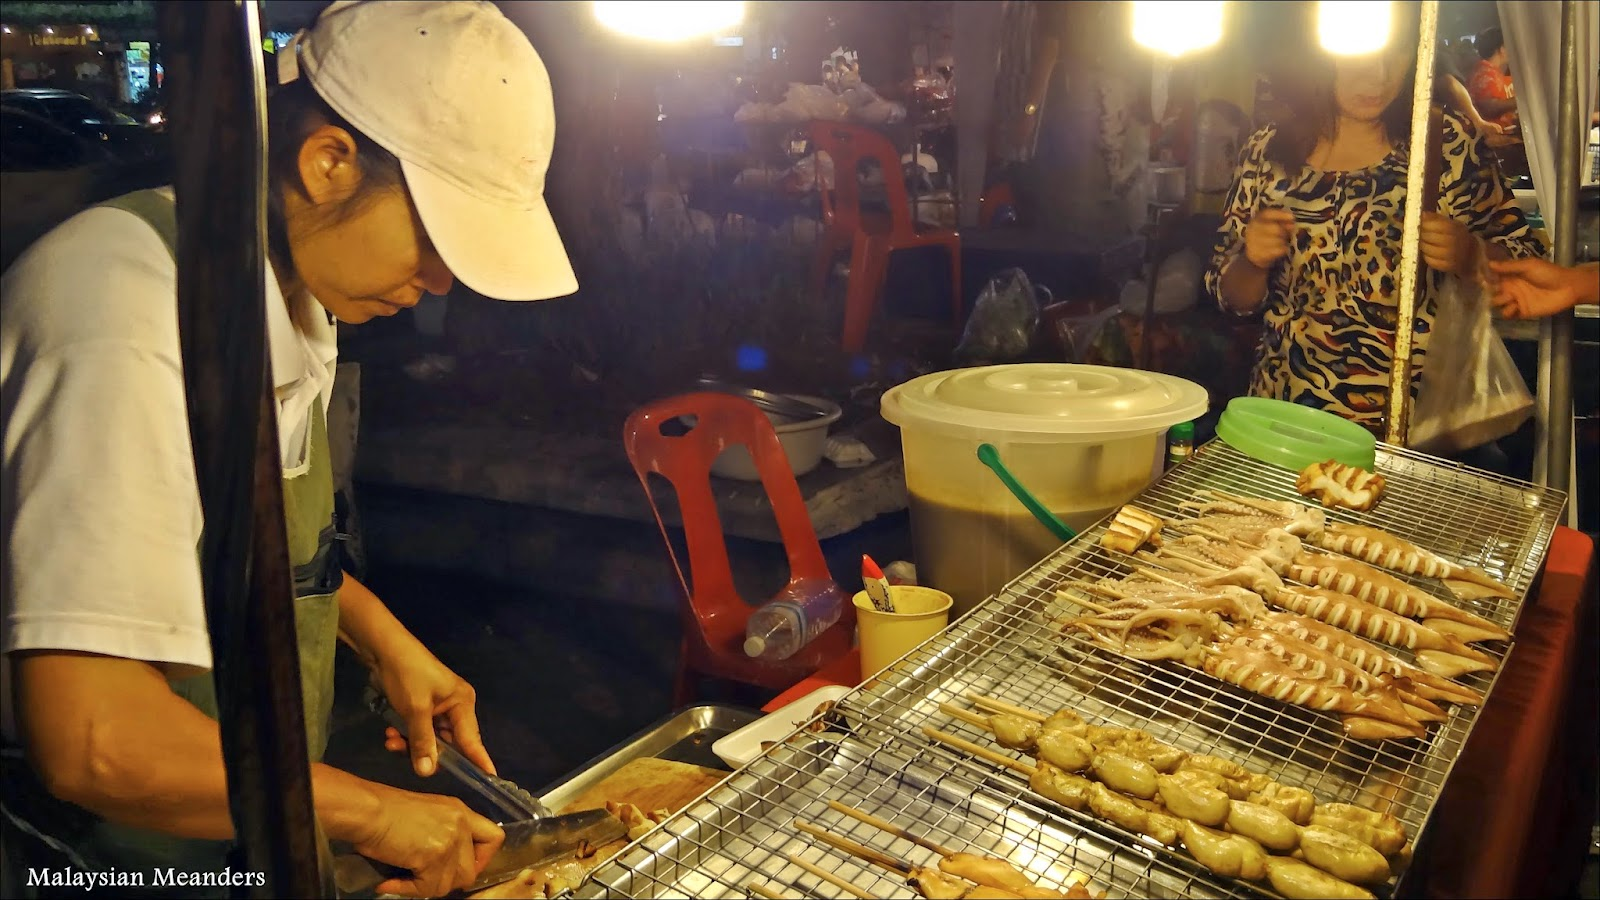 Delicious food at the Chiang Mai night market, photo courtesy Malaysian Meanders